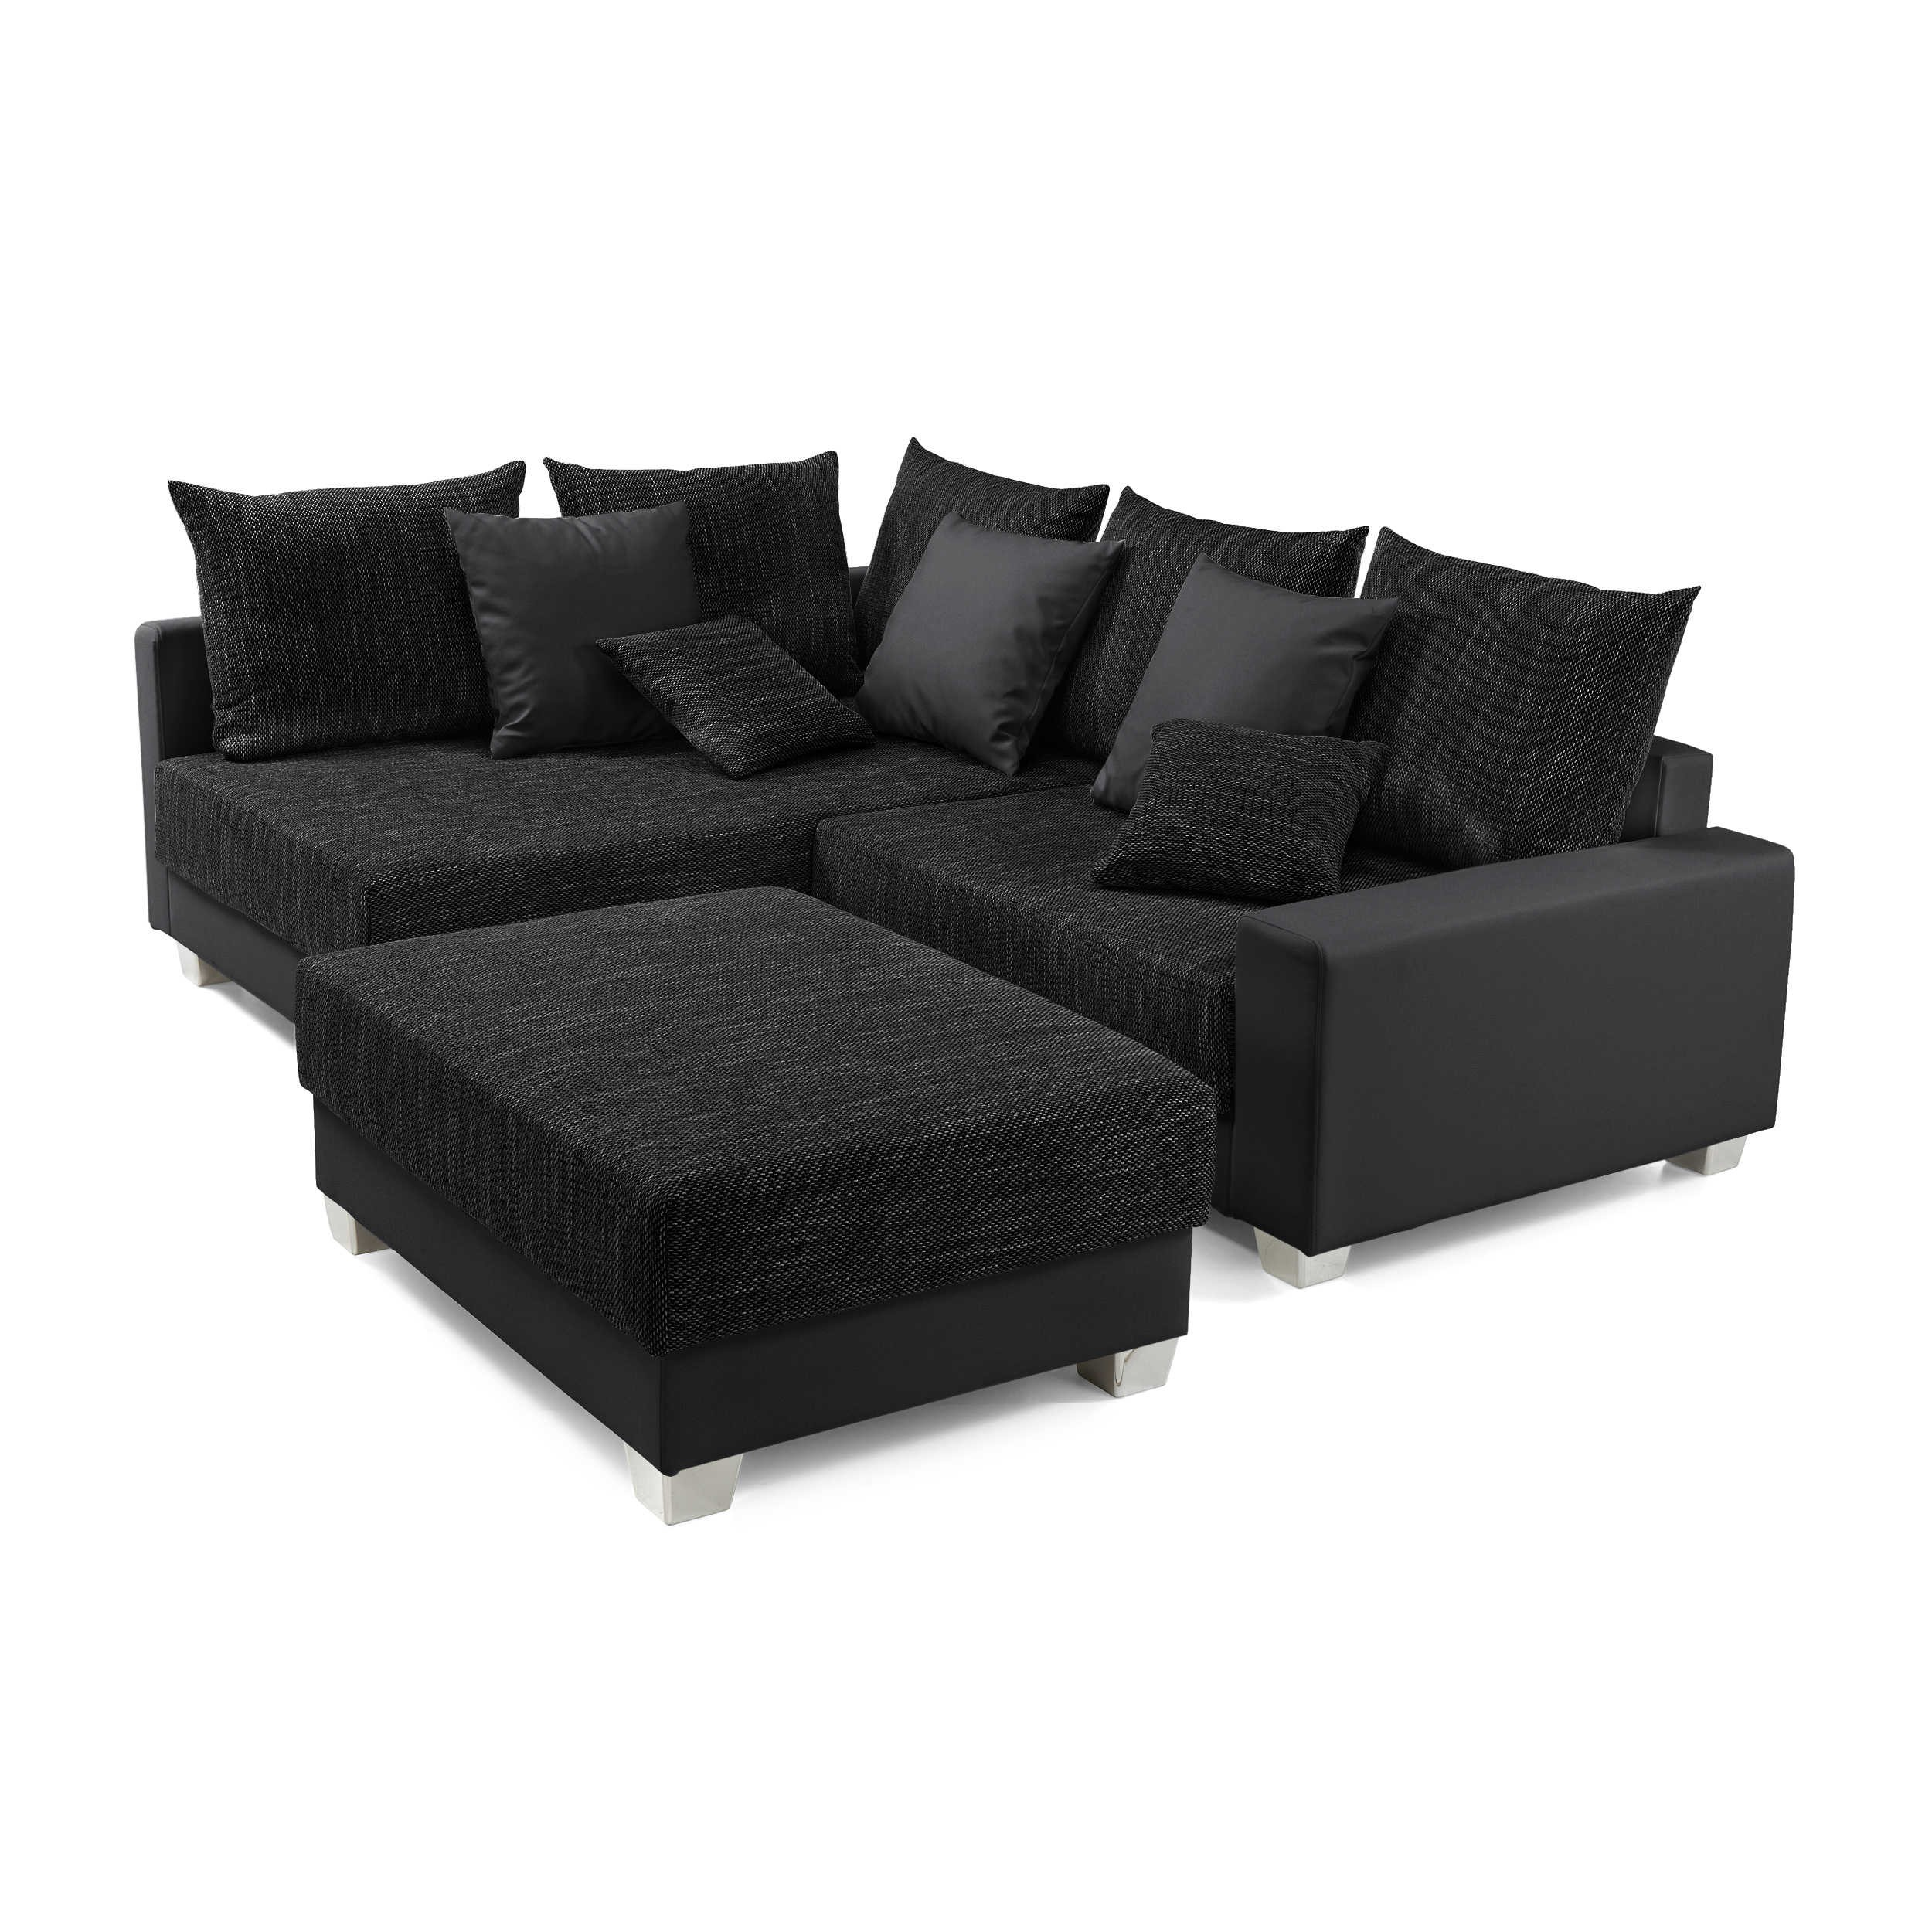 ecksofa mit hocker murlo schwarz stoff online kaufen bei woonio. Black Bedroom Furniture Sets. Home Design Ideas